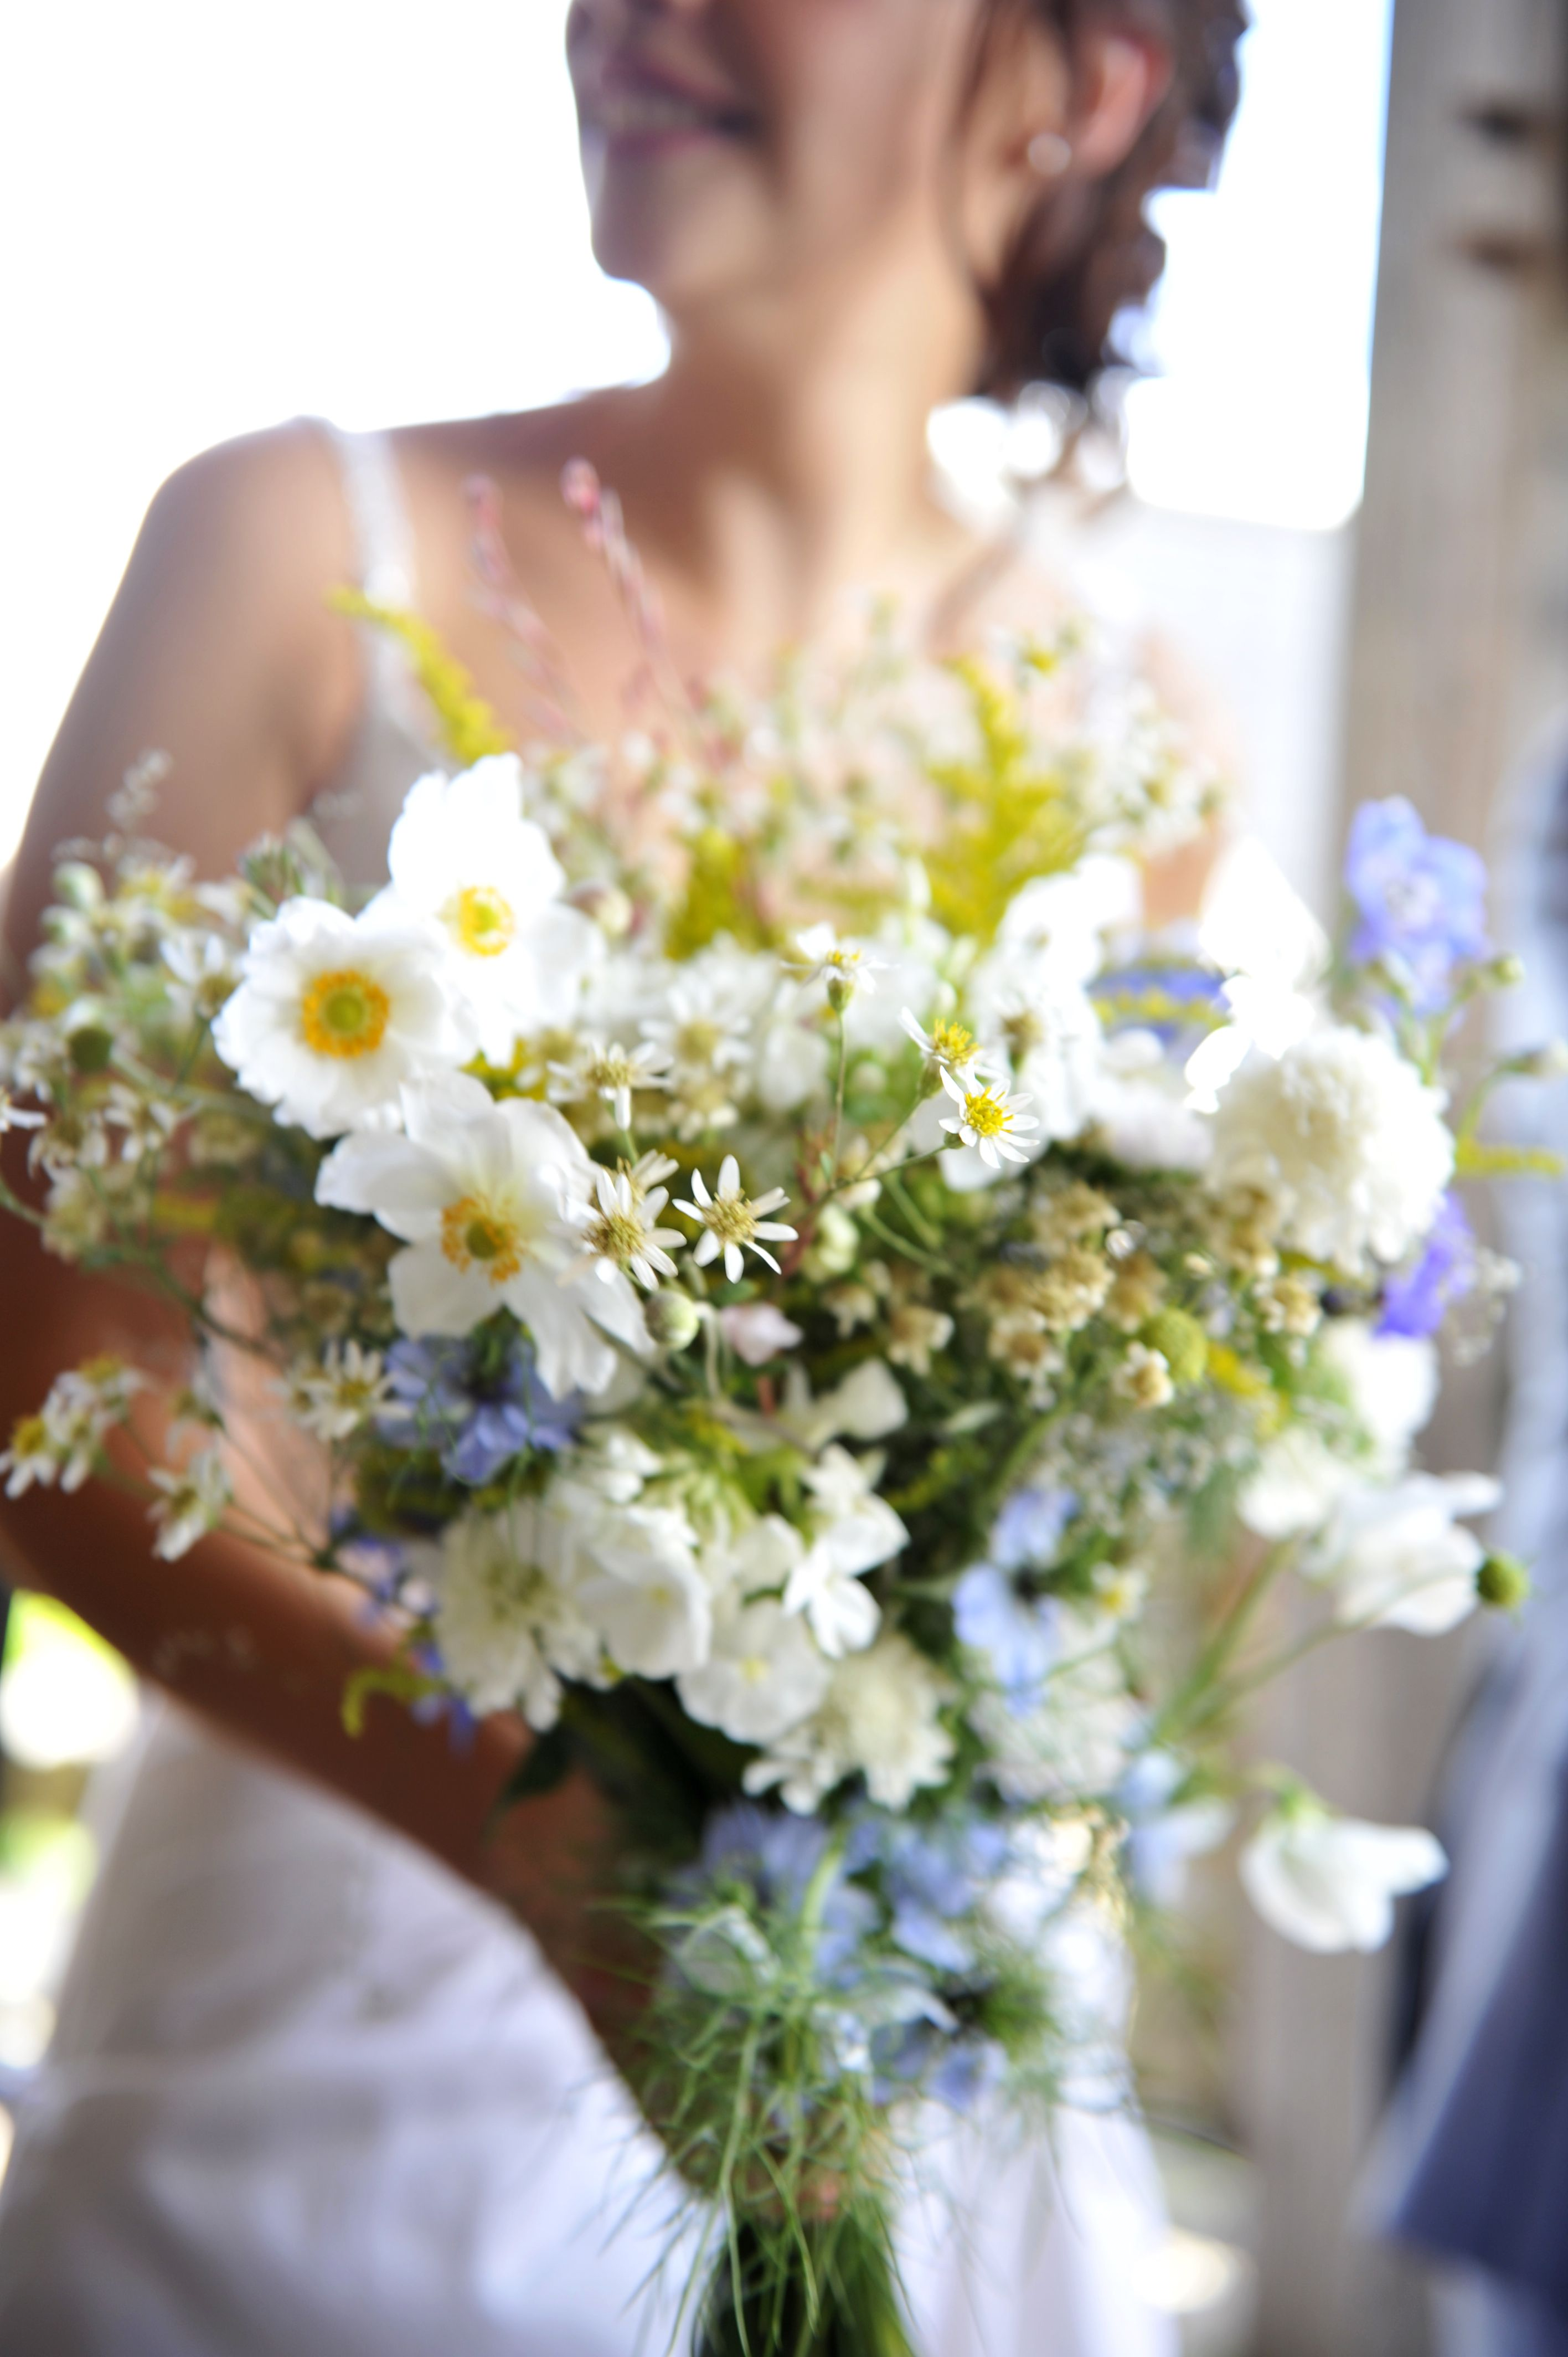 pinsealed with a kiss events on floral | september